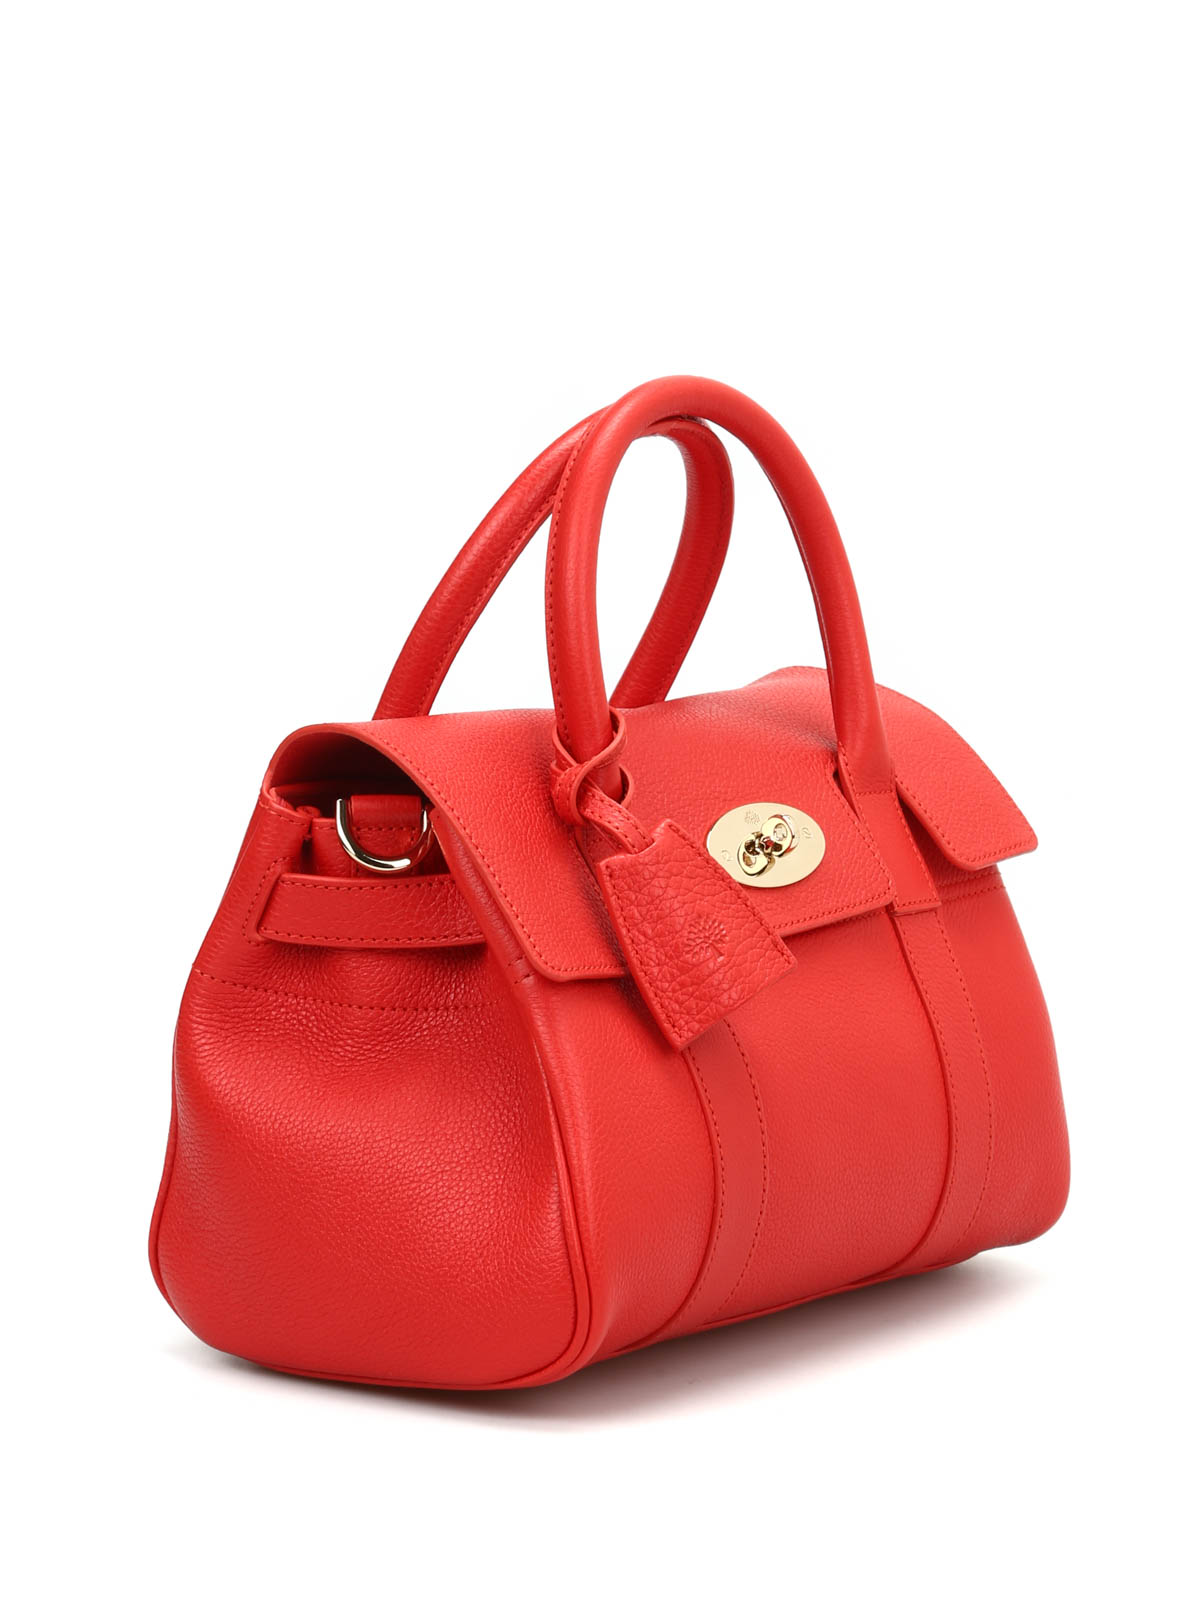 18d62ea591da best price mulberry bowling bags online bayswater small leather bag 583d4  a2b92